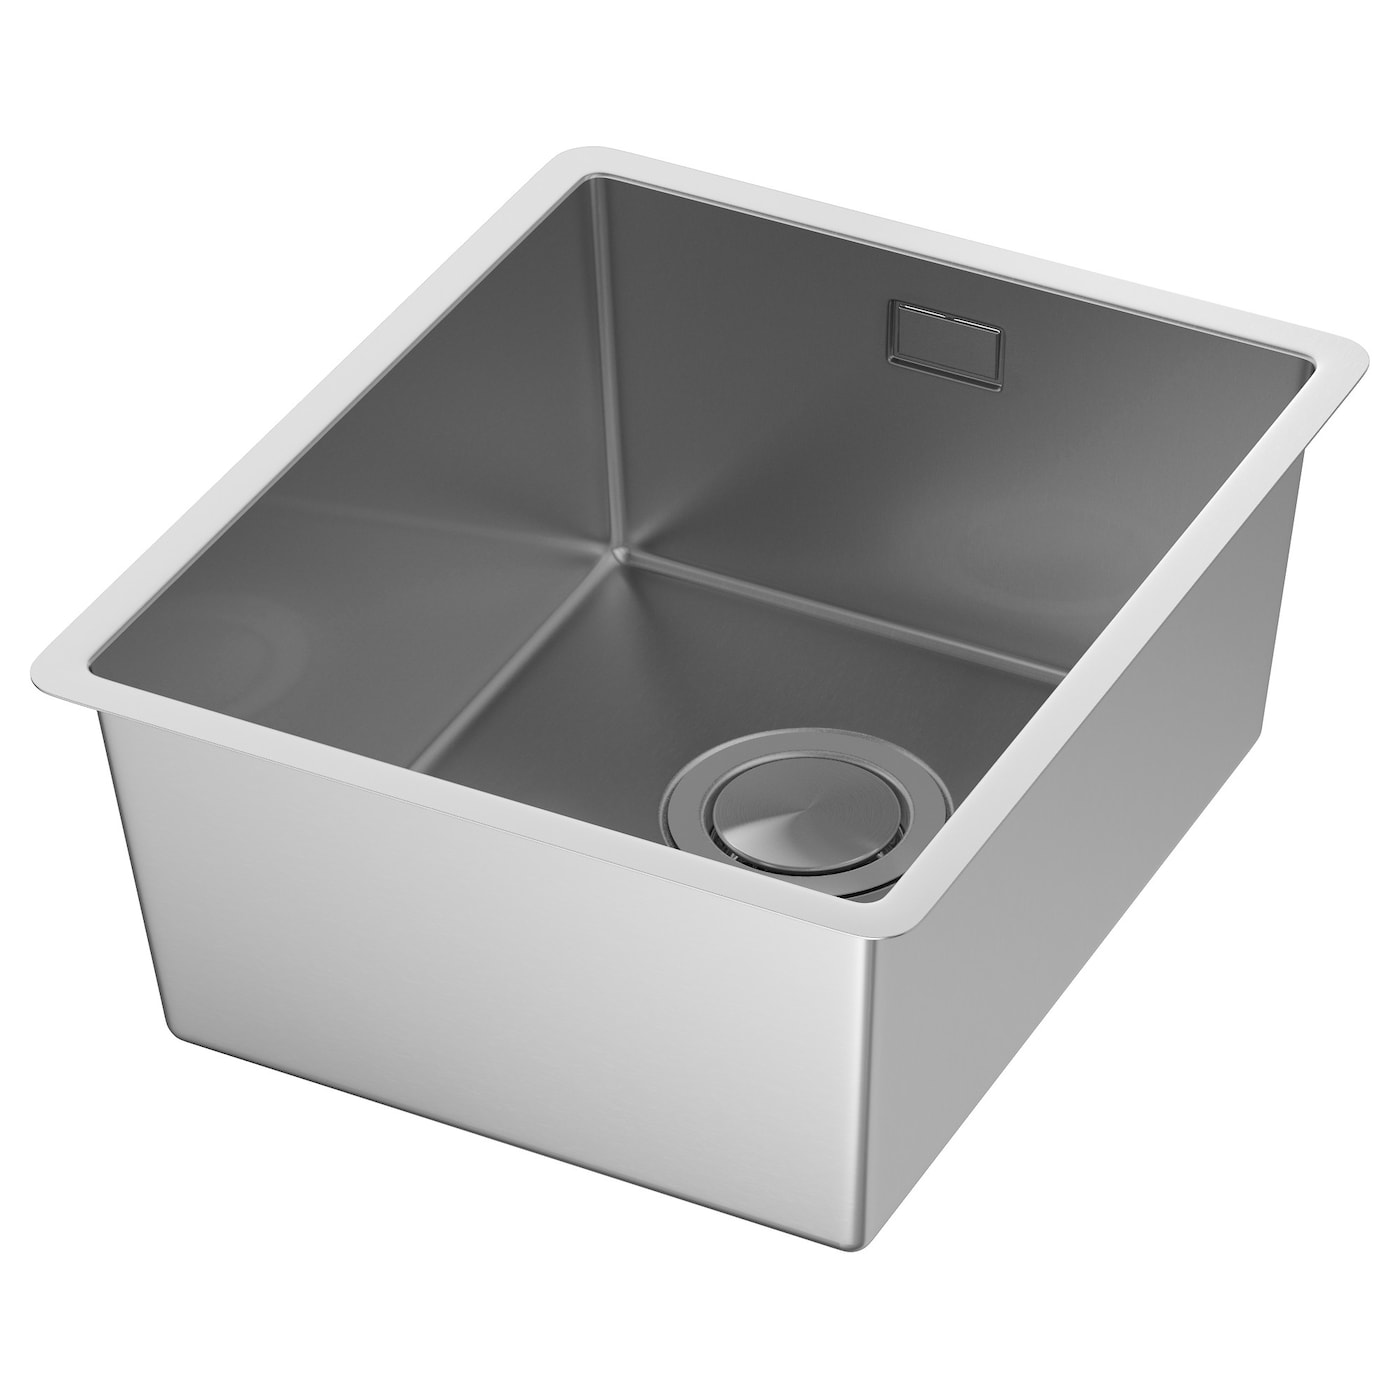 Ordinaire IKEA NORRSJÖN Inset Sink, 1 Bowl 25 Year Guarantee. Read About The Terms In